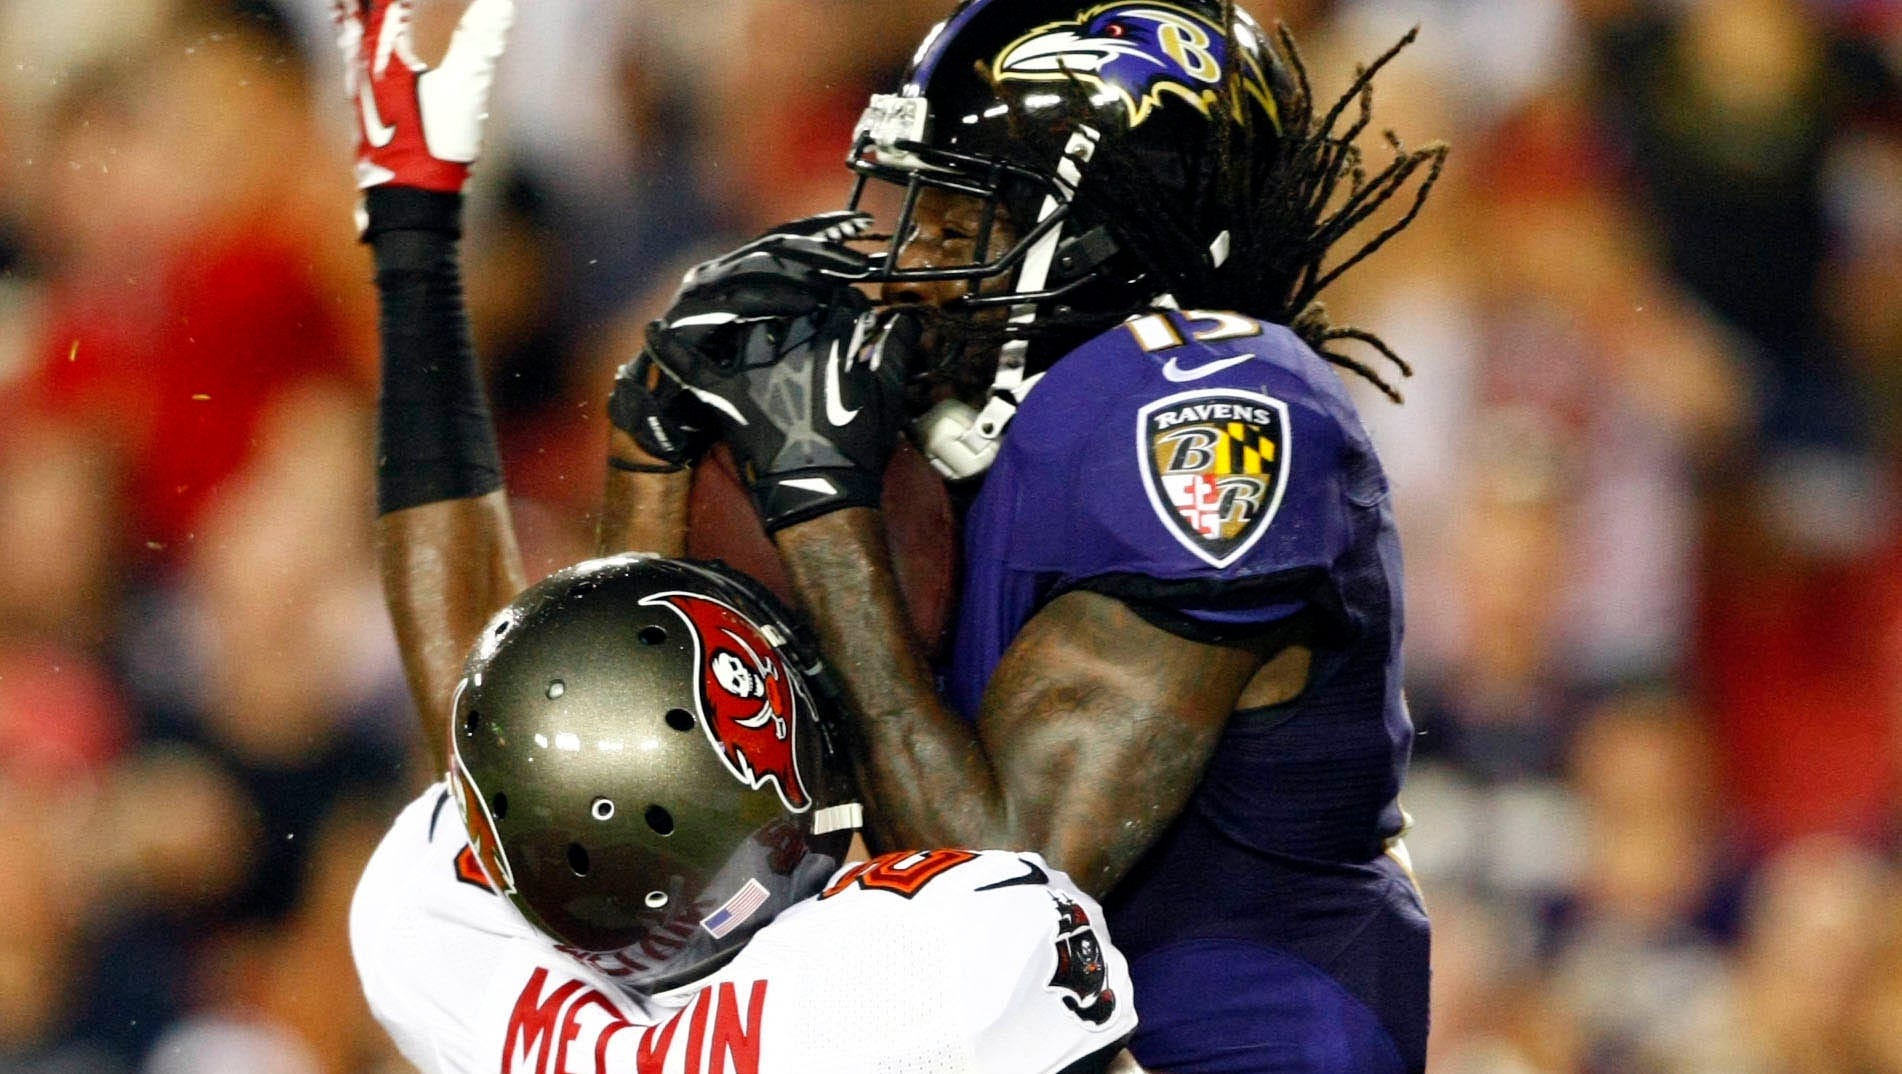 Baltimore Ravens wide receiver LaQuan Williams (15) makes a touchdown reception over Tampa Bay Buccaneers defensive back Rashaan Melvin (28) during the third quarter at Raymond James Stadium.